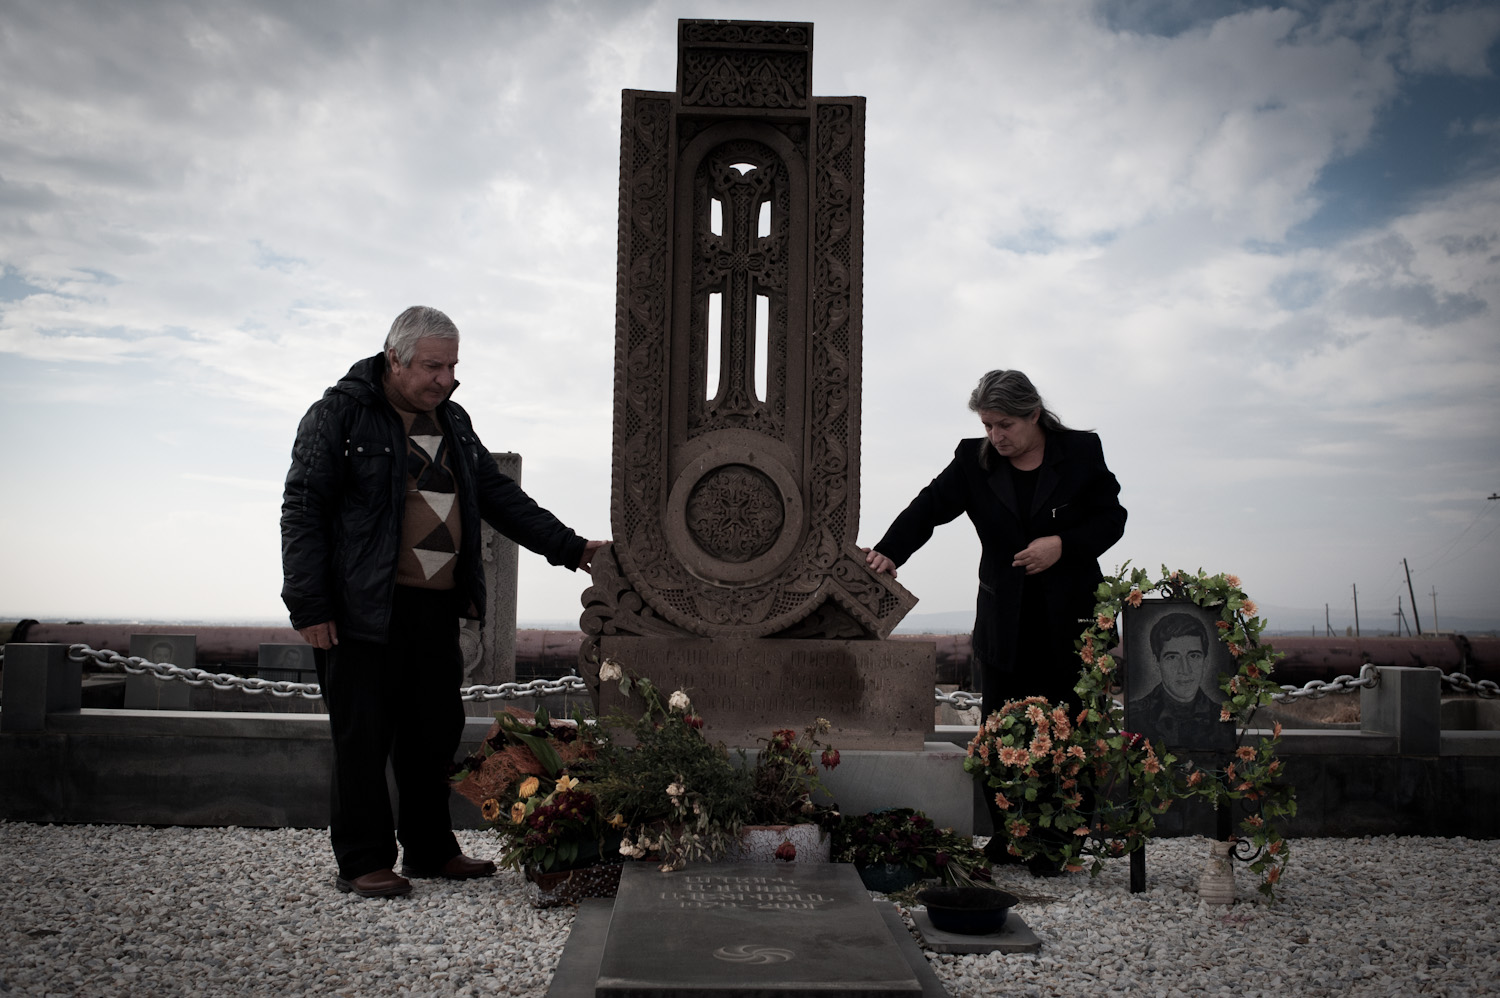 """Anahit and Aghasi at their son's grave. """"While serving, my son would describe how the battalion commander would grab soldiers by the collar and put his loaded gun to their heads to scare them. This is the same way my son was killed."""""""